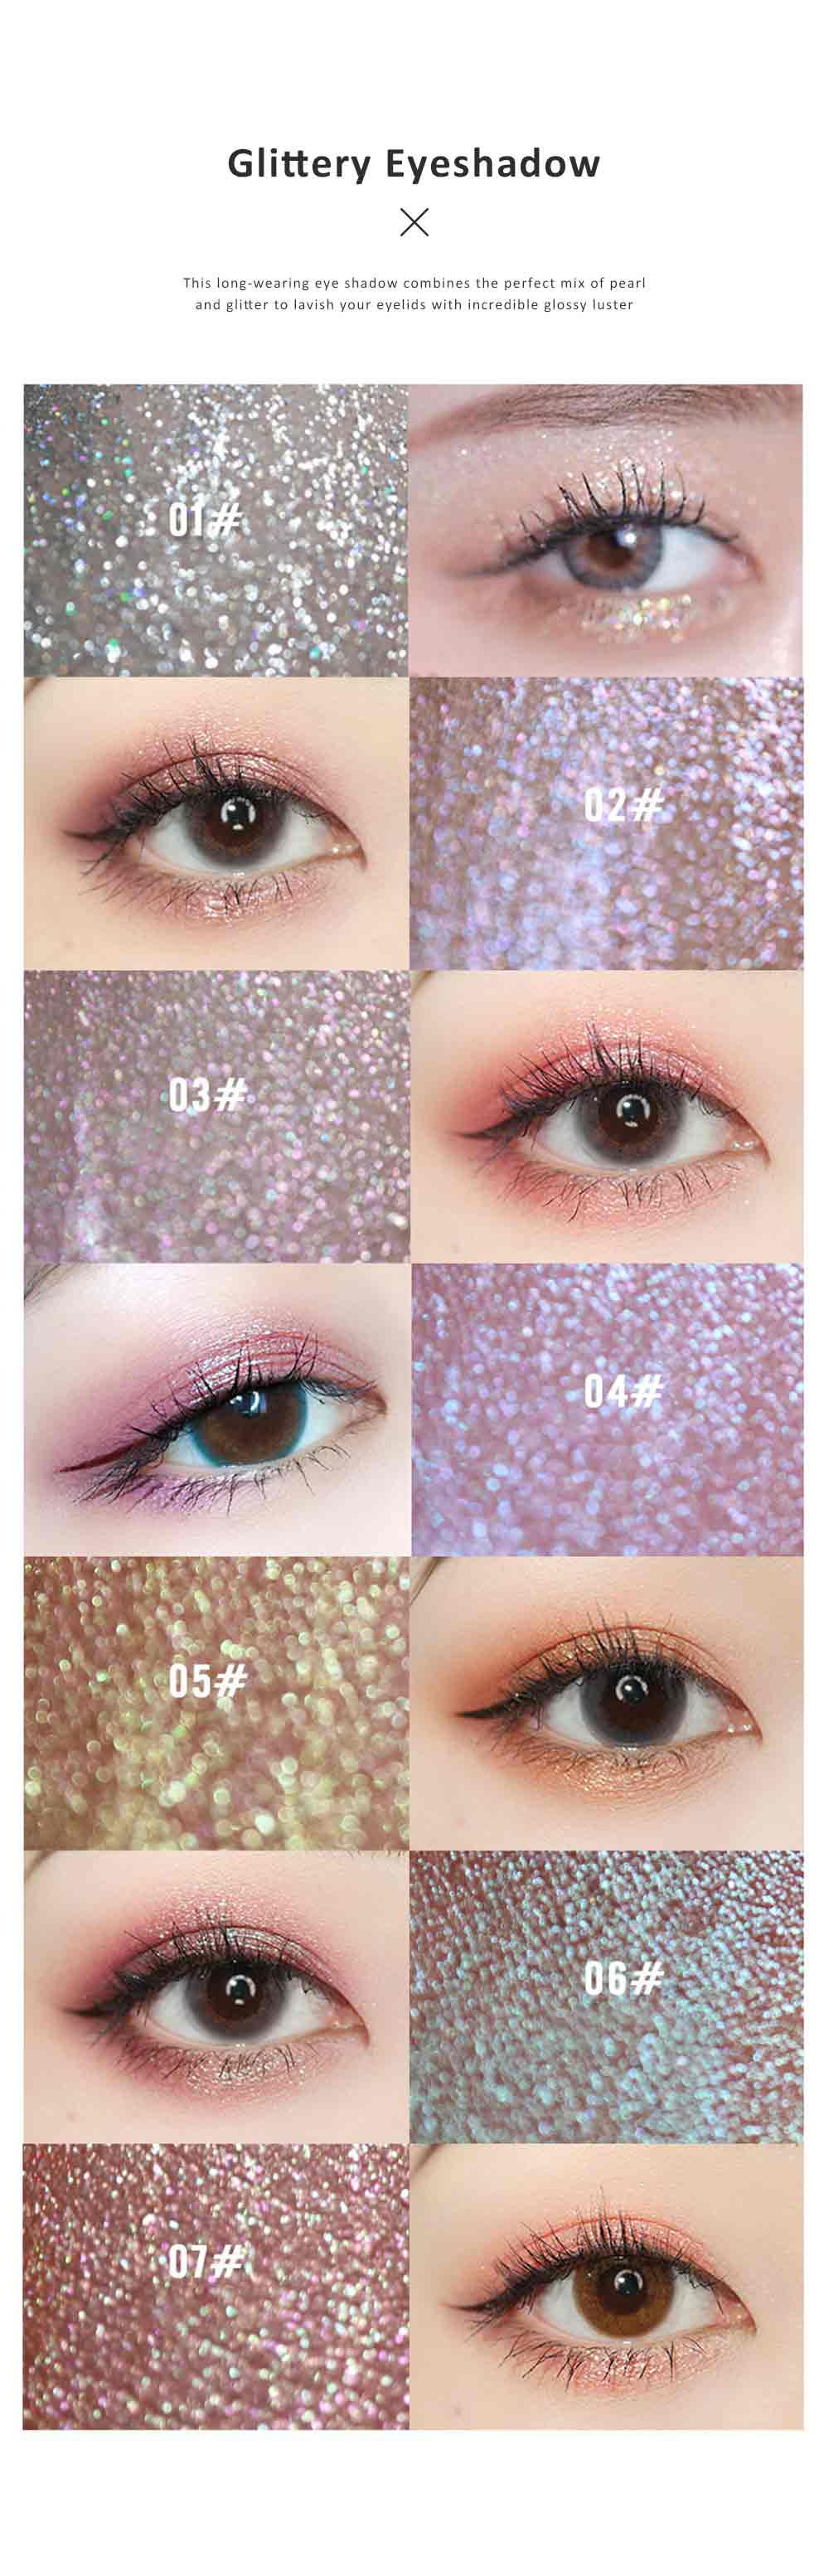 Unicorn Liquid Eye Shadow Waterproof Shimmery Eye Gloss Single Color Lightweight Cosmetic for Women Ladies Girls Women Make Up Tool 1